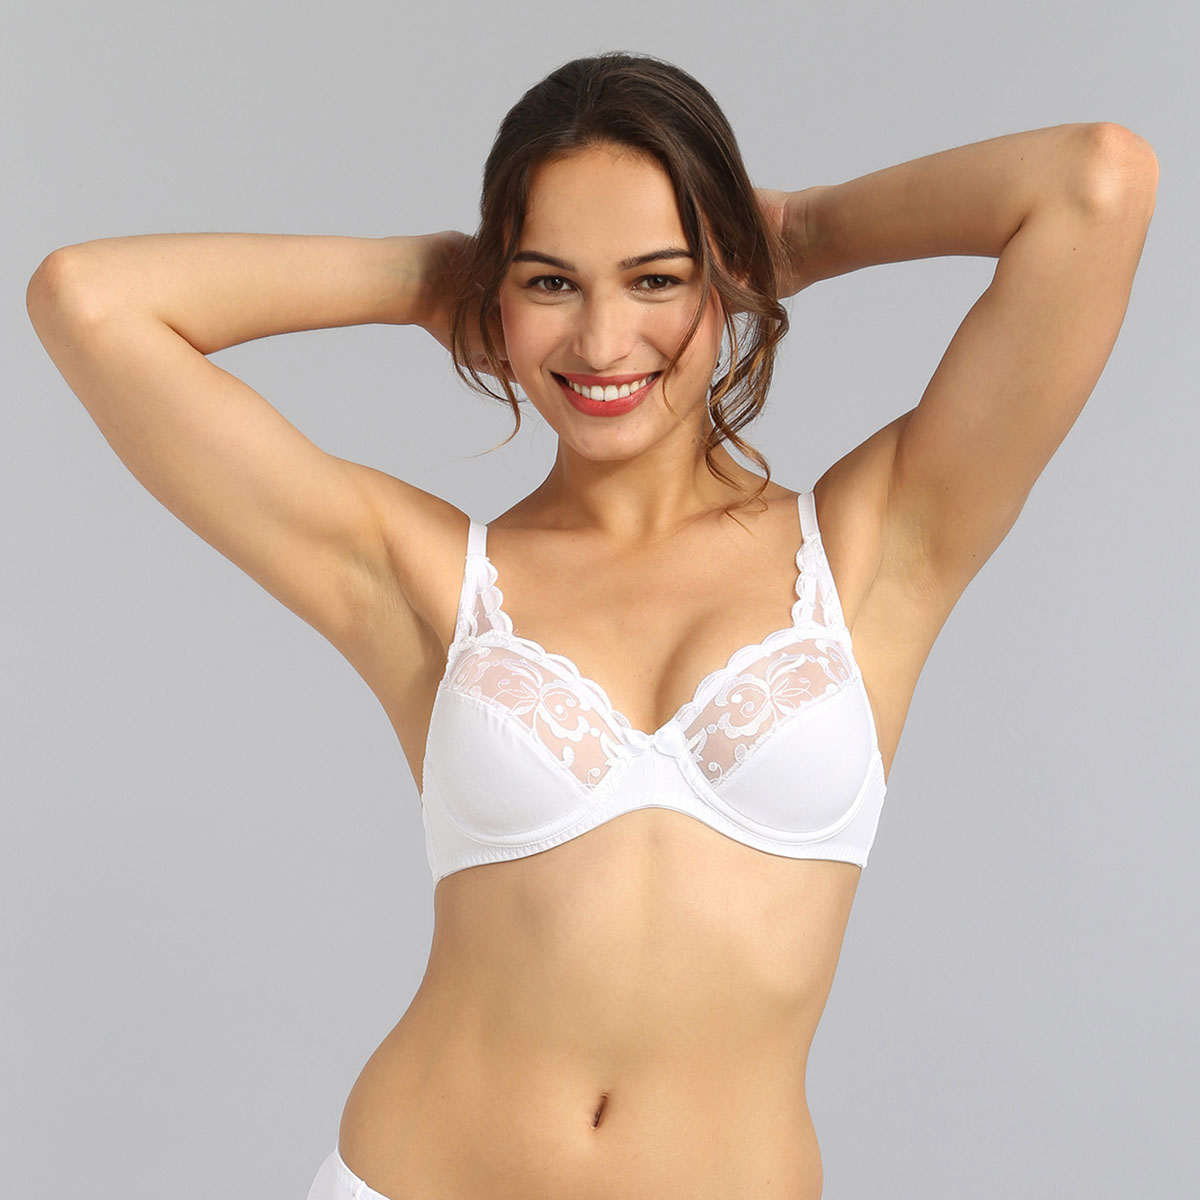 Reggiseno con ferretto bianco Essential Elegance Embroidery, , PLAYTEX